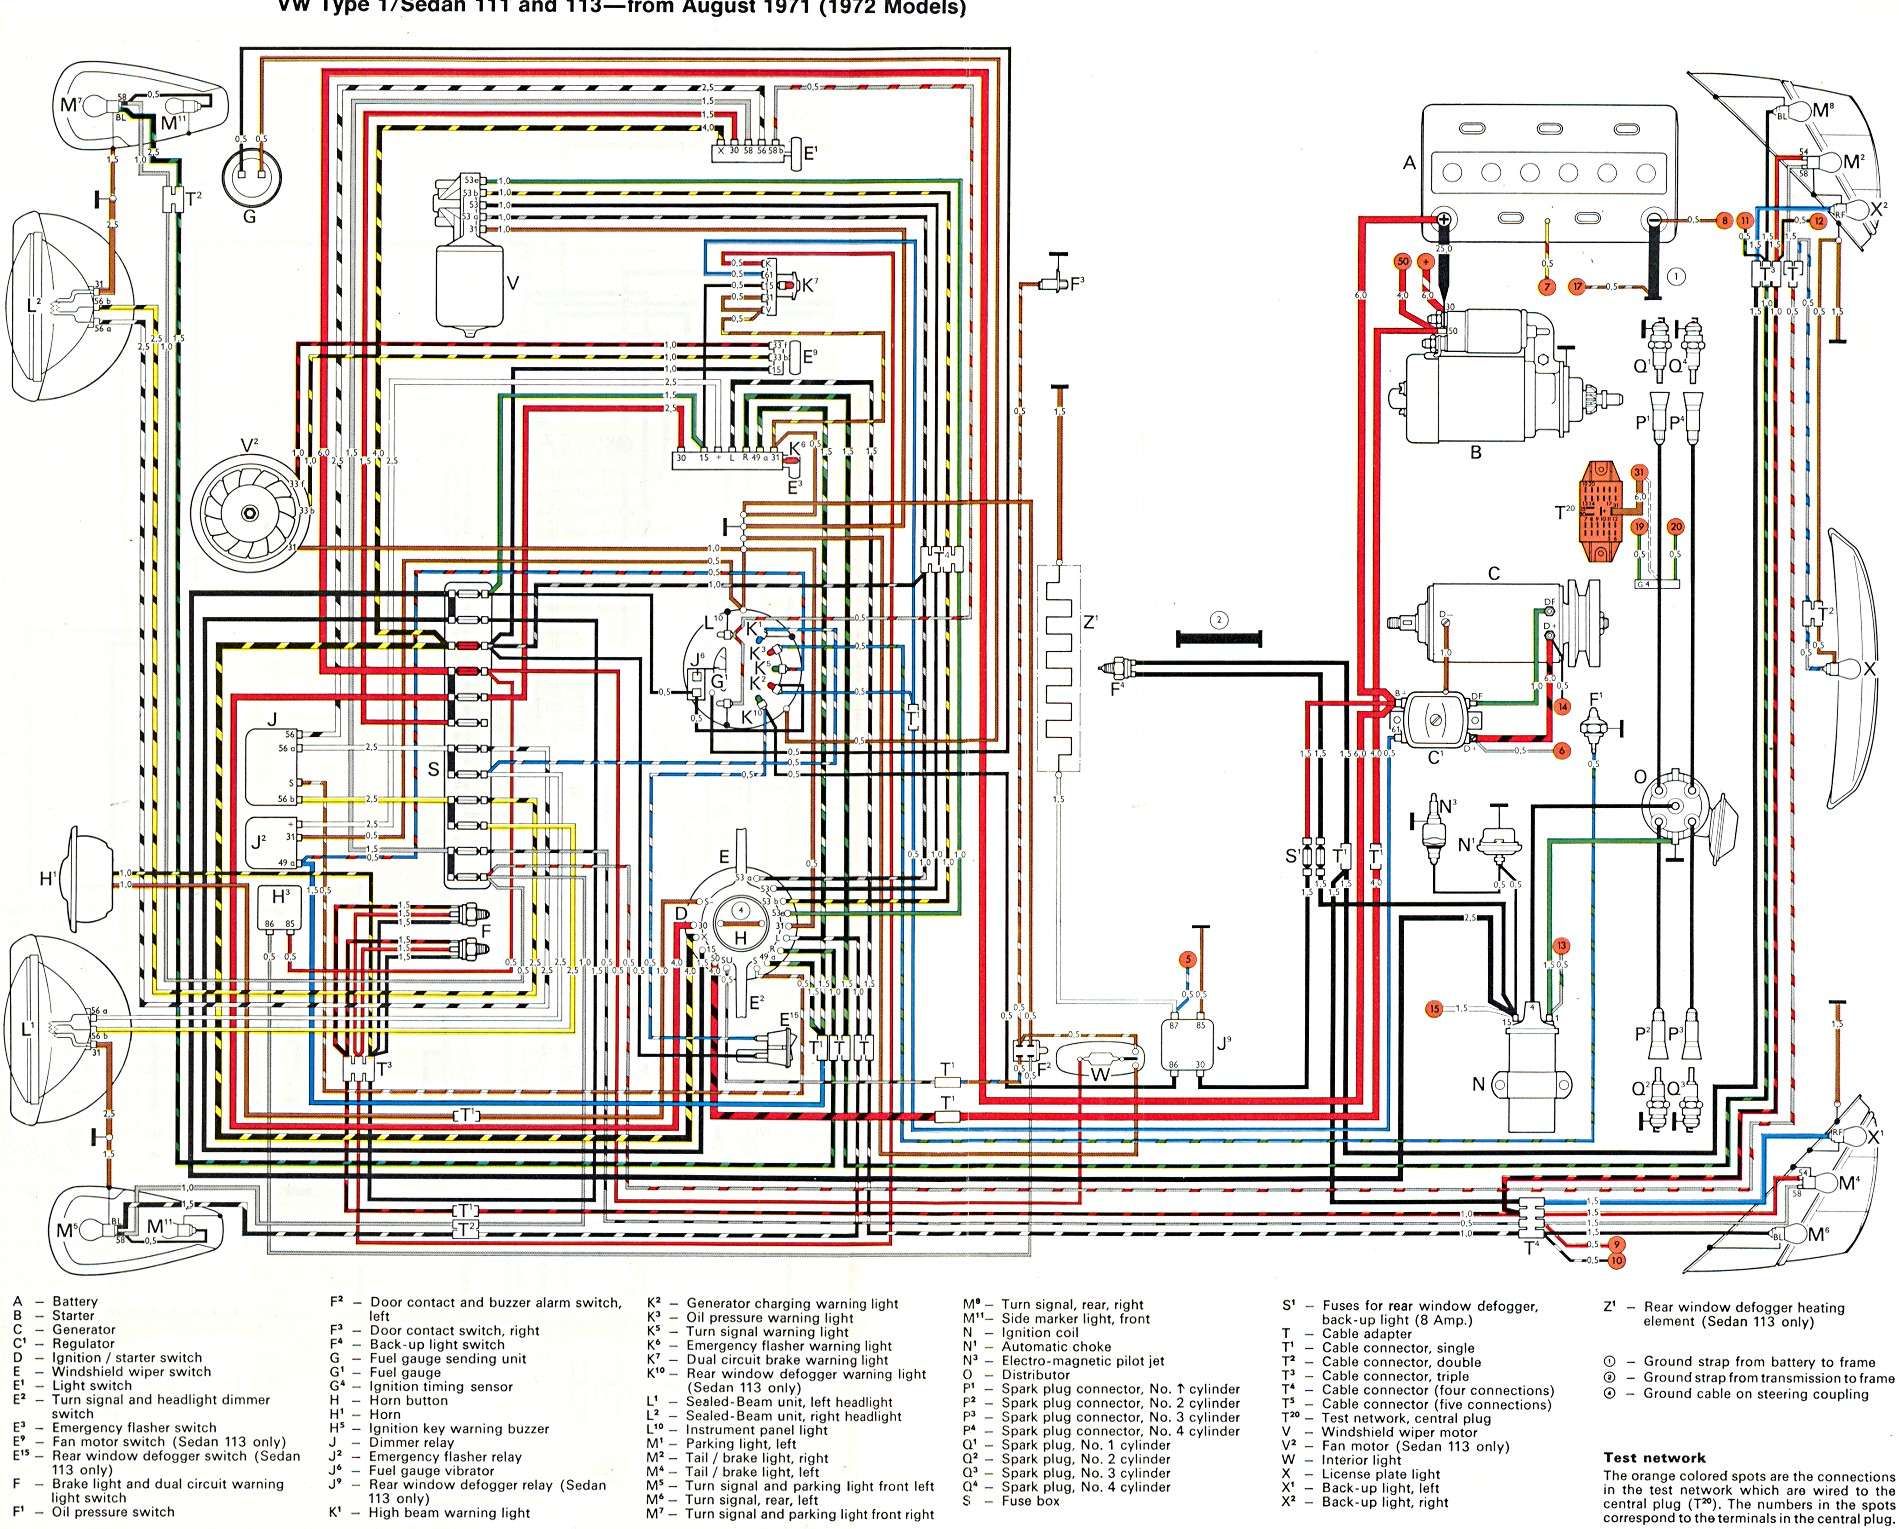 1972 Vw Fuse Diagram Wiring Diagram Productive Productive Zaafran It